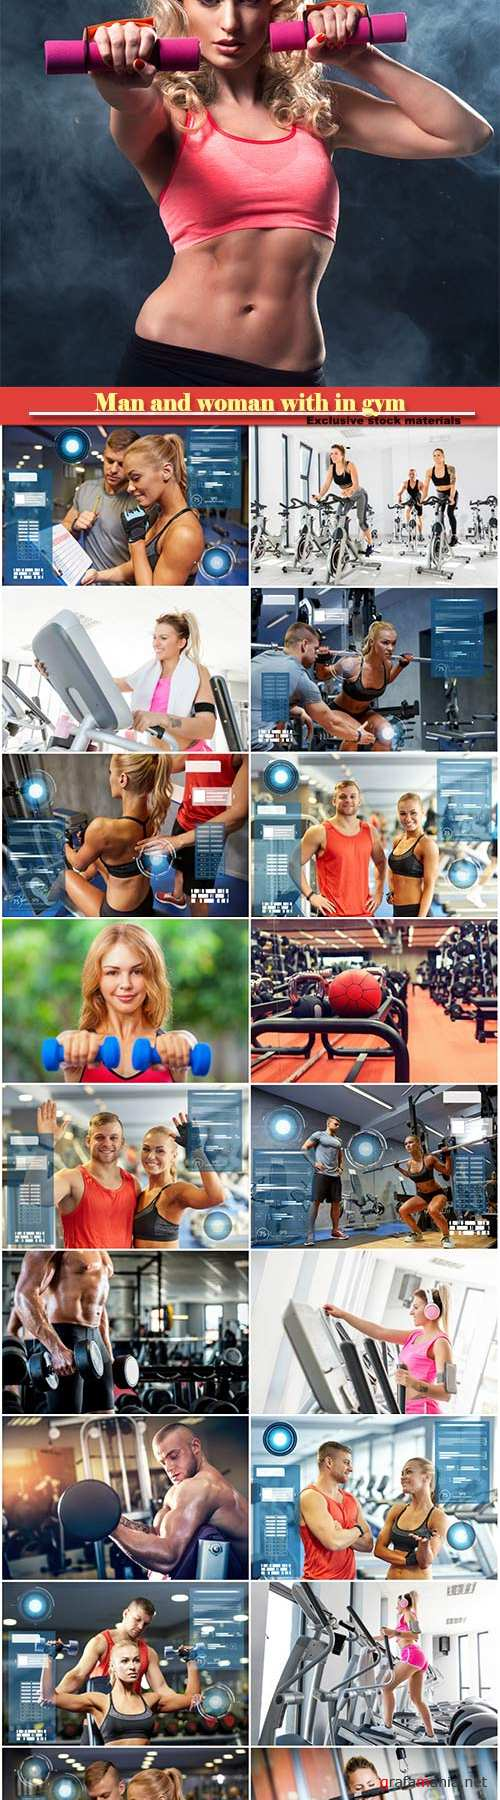 Sport activities, man and woman with in gym